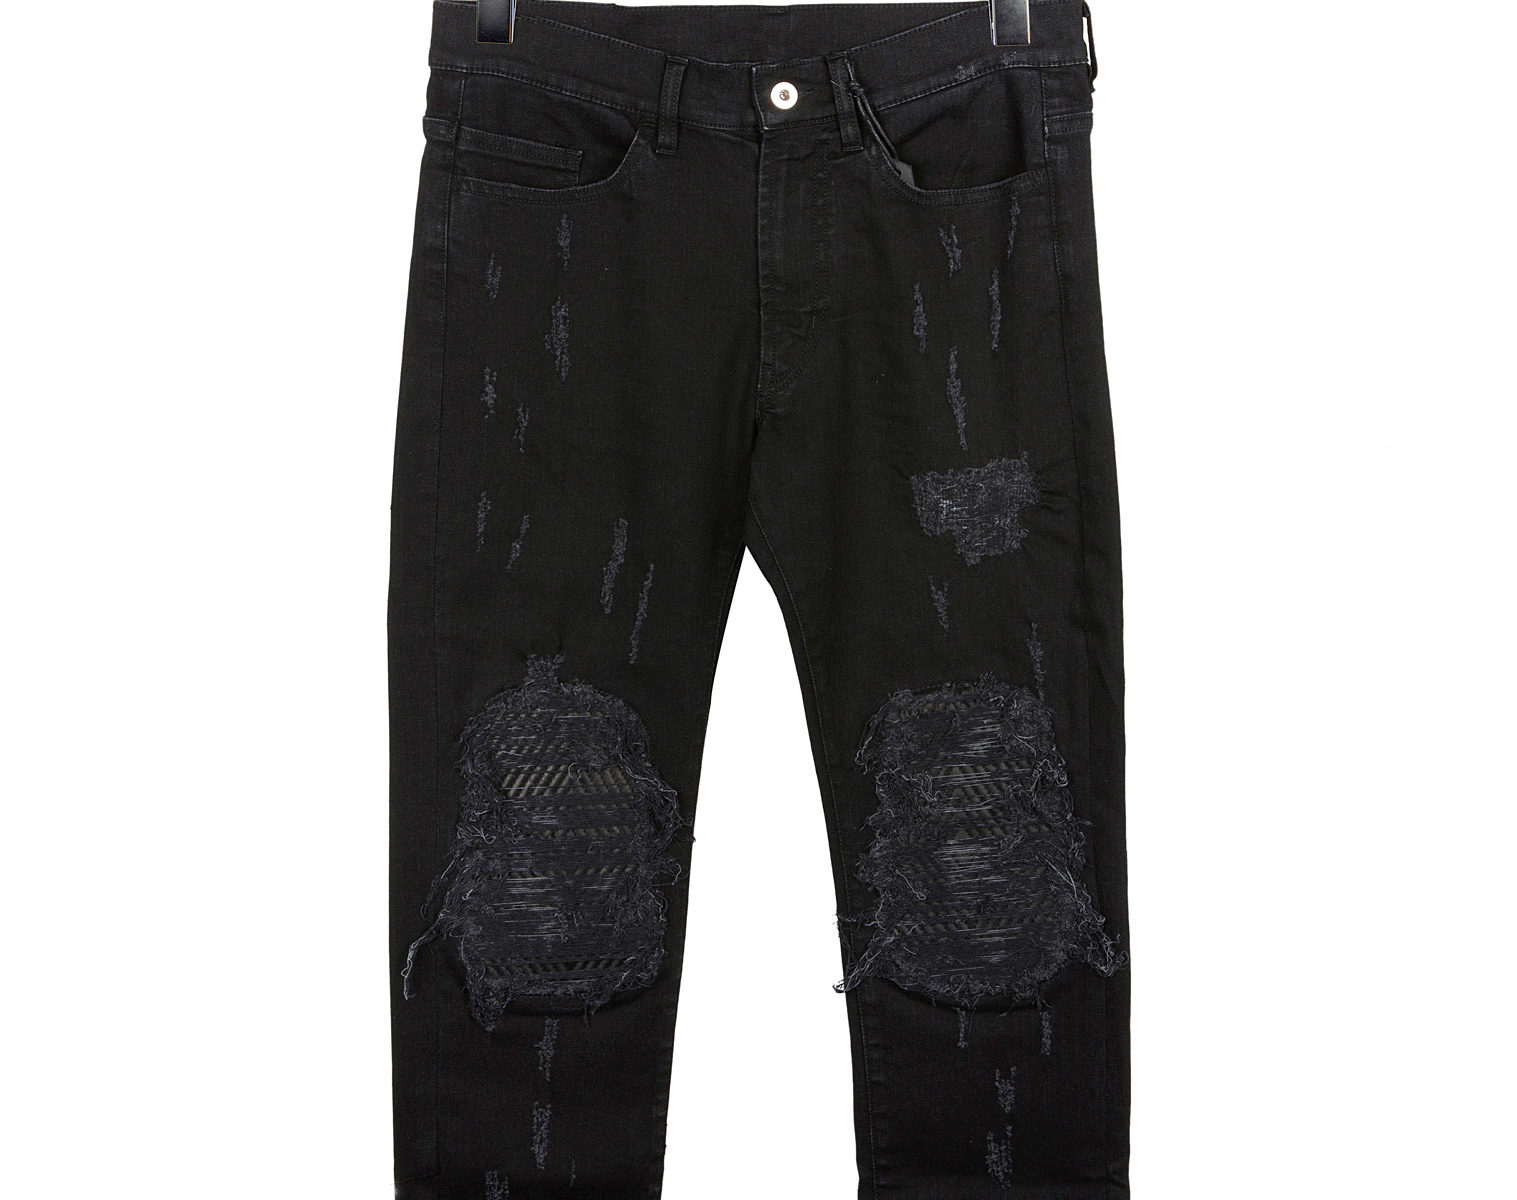 MJB Crixus Jeans With Knee Pads 1